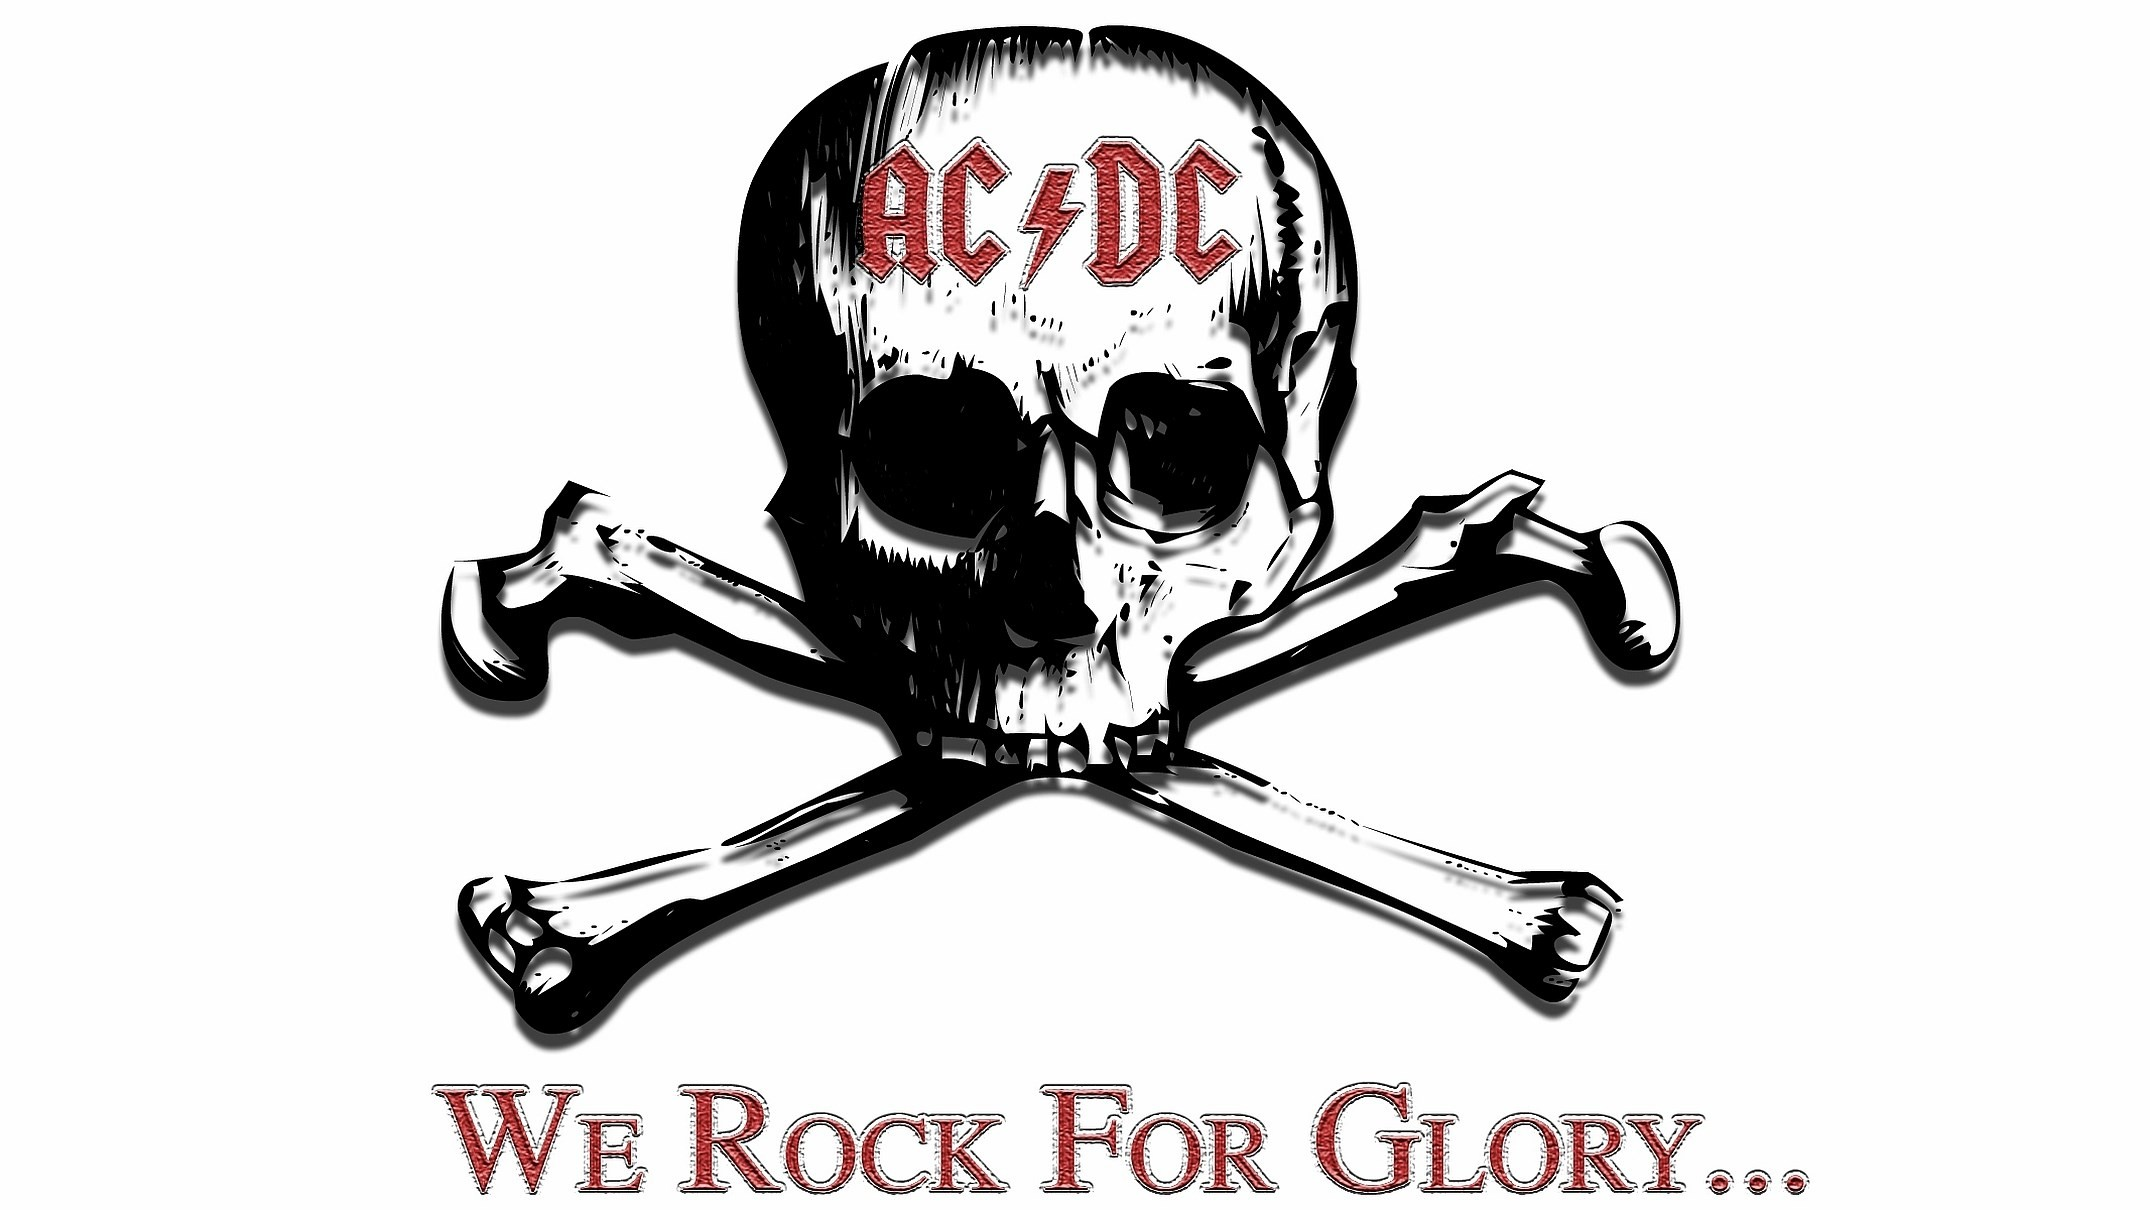 2150x1210 acdc wallpaper backgrounds hd - acdc category